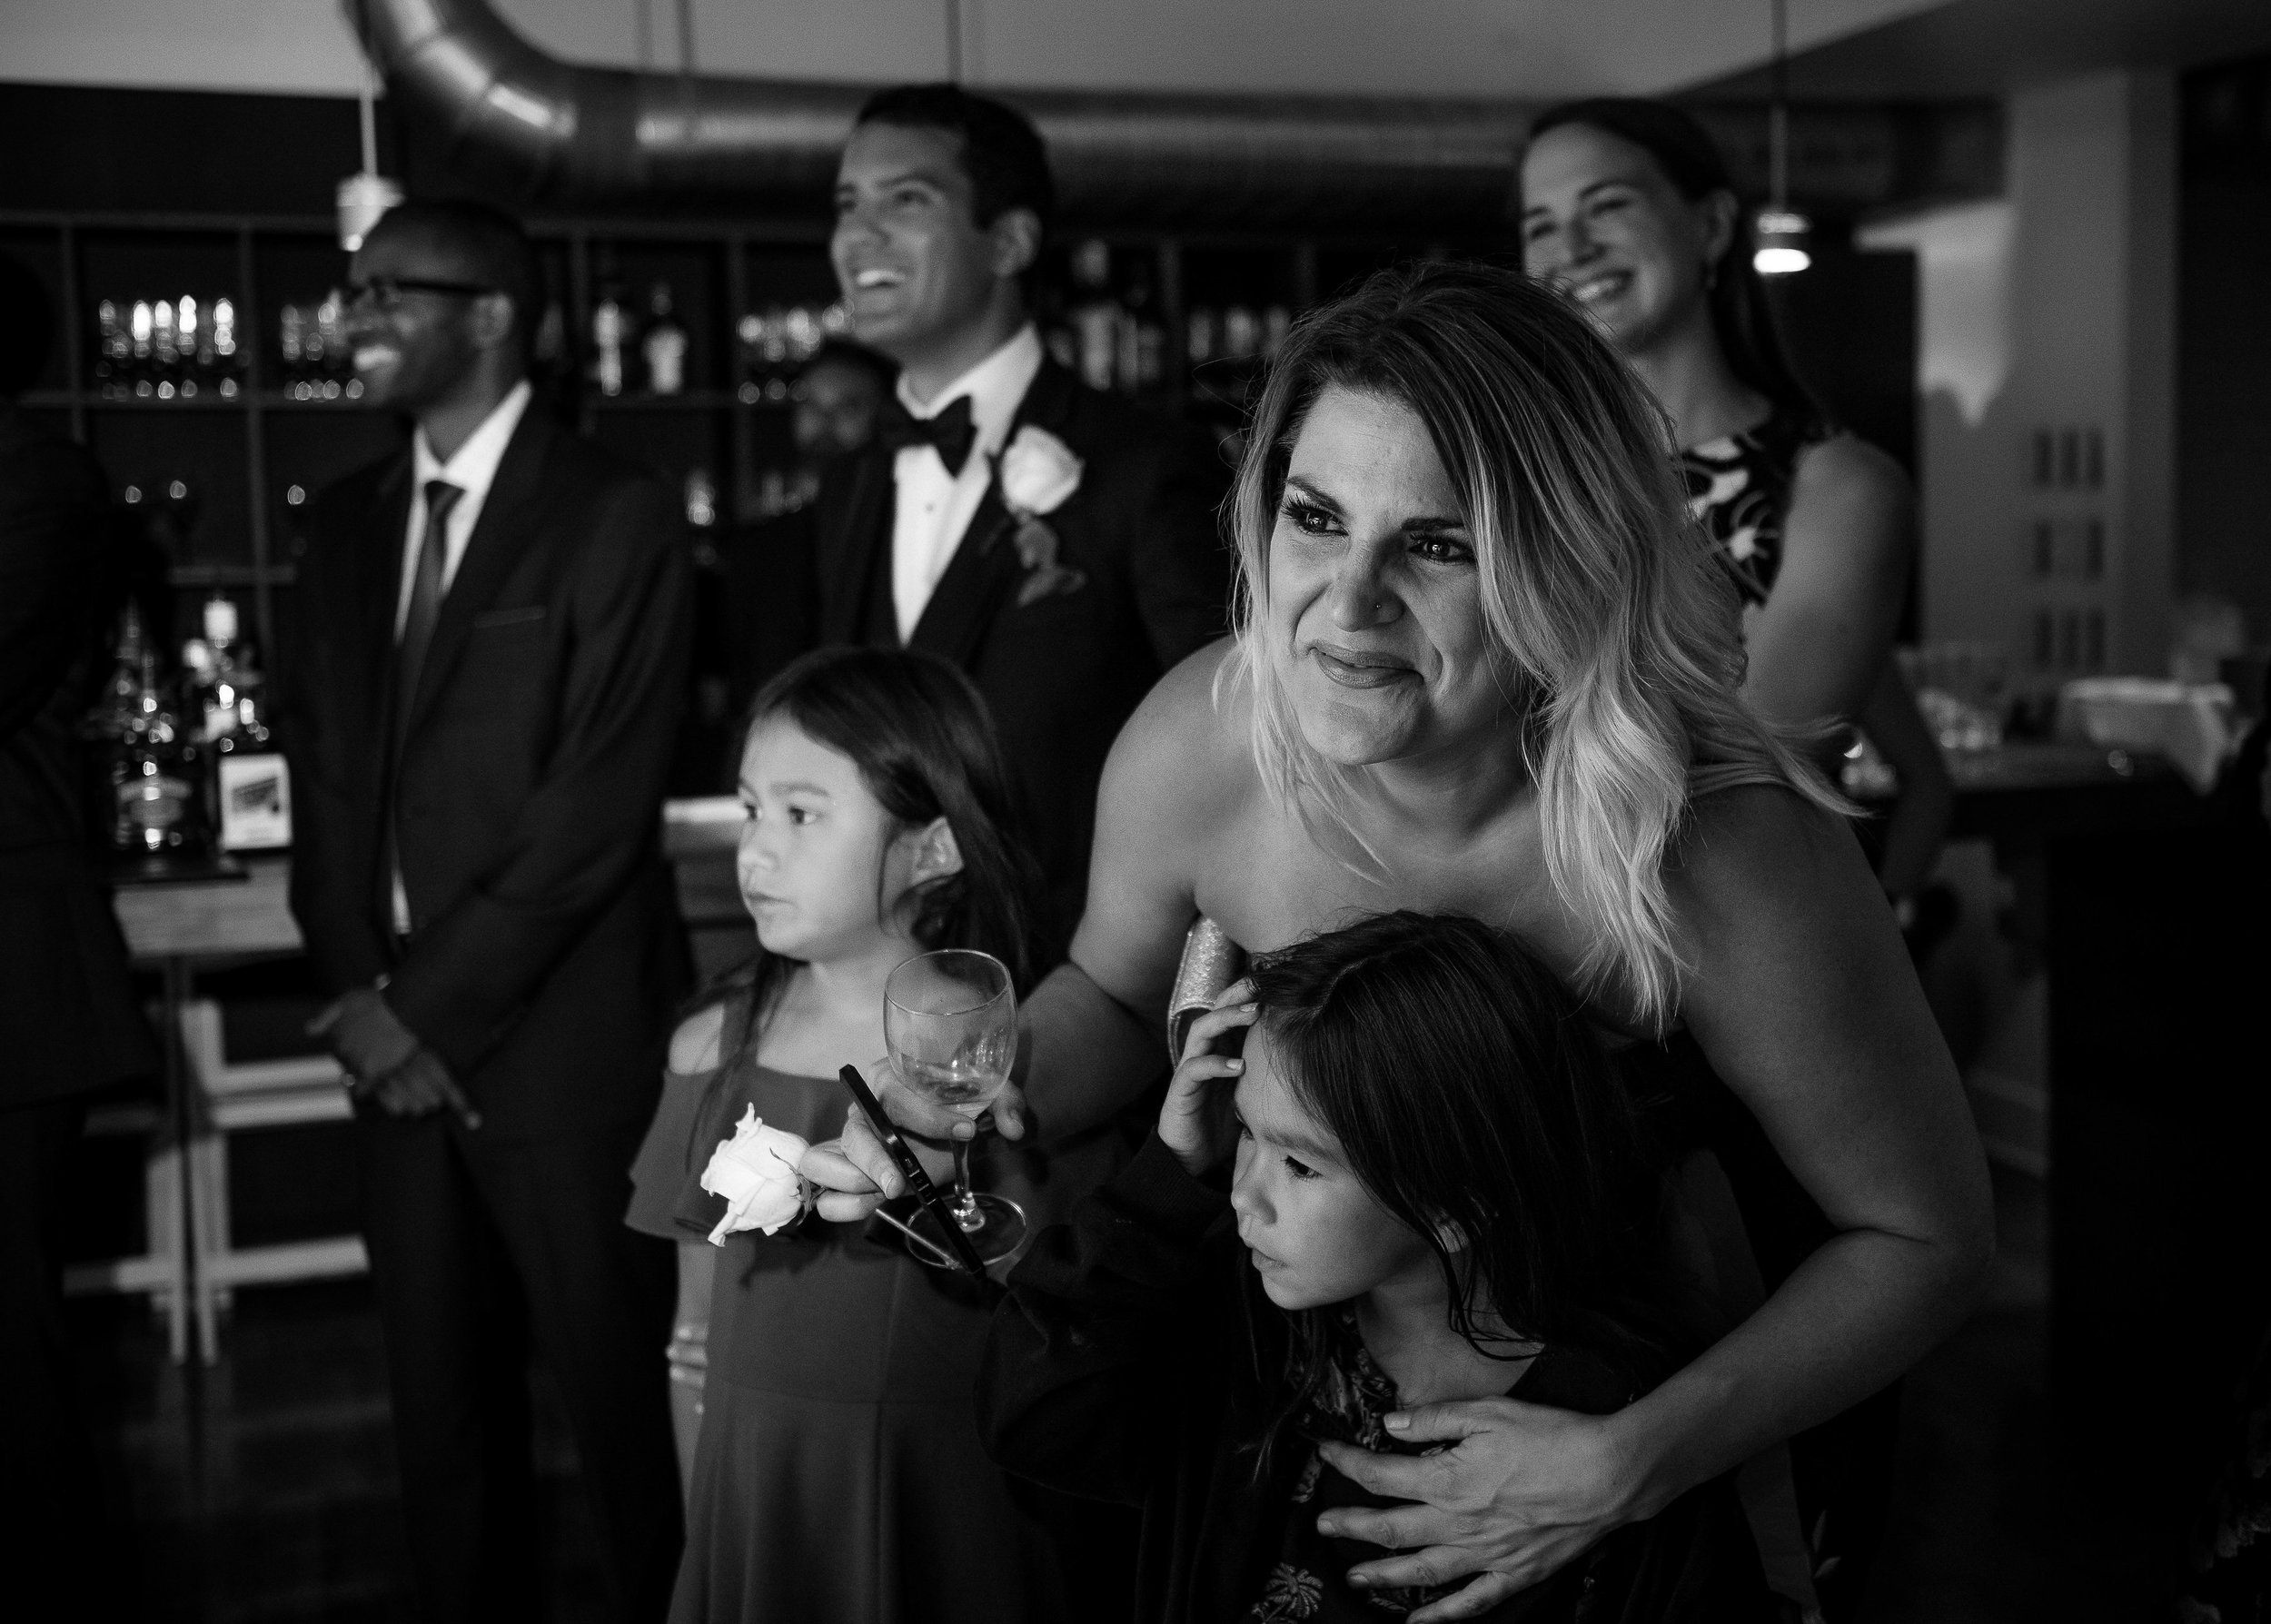 Christine_and_Leon_wedding_lana_nimmons_photography10658.jpg